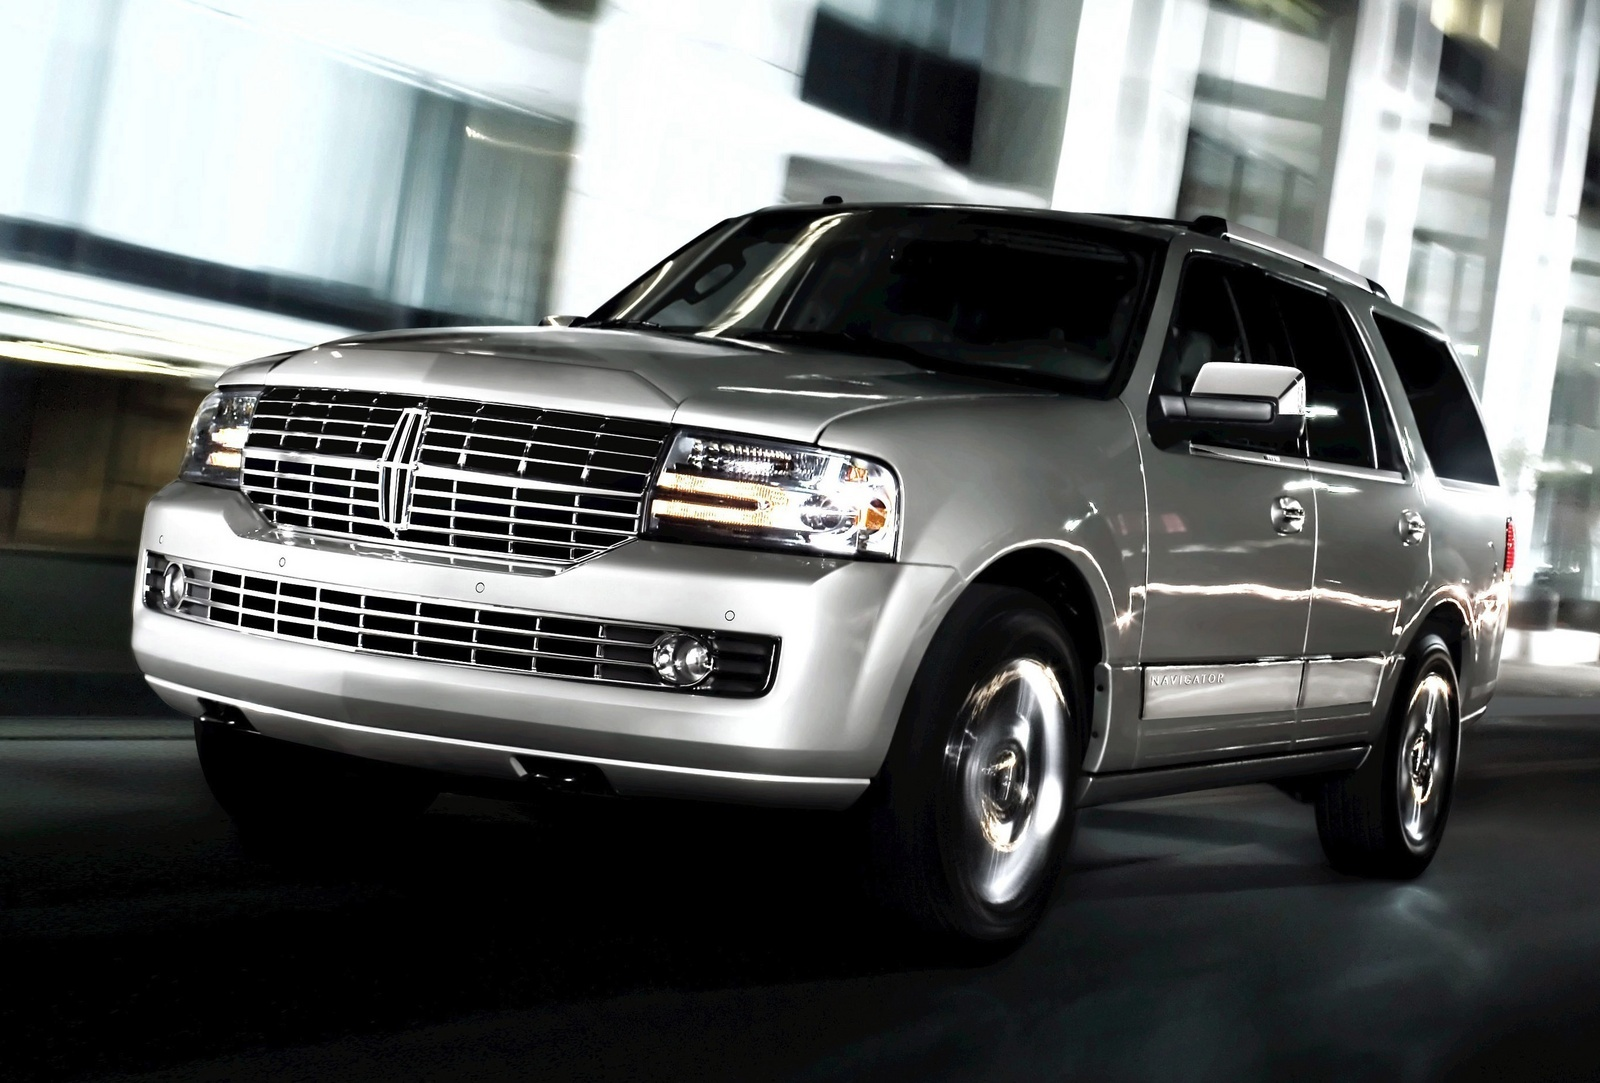 Used Cars Austin >> 2014 Lincoln Navigator - Overview - CarGurus